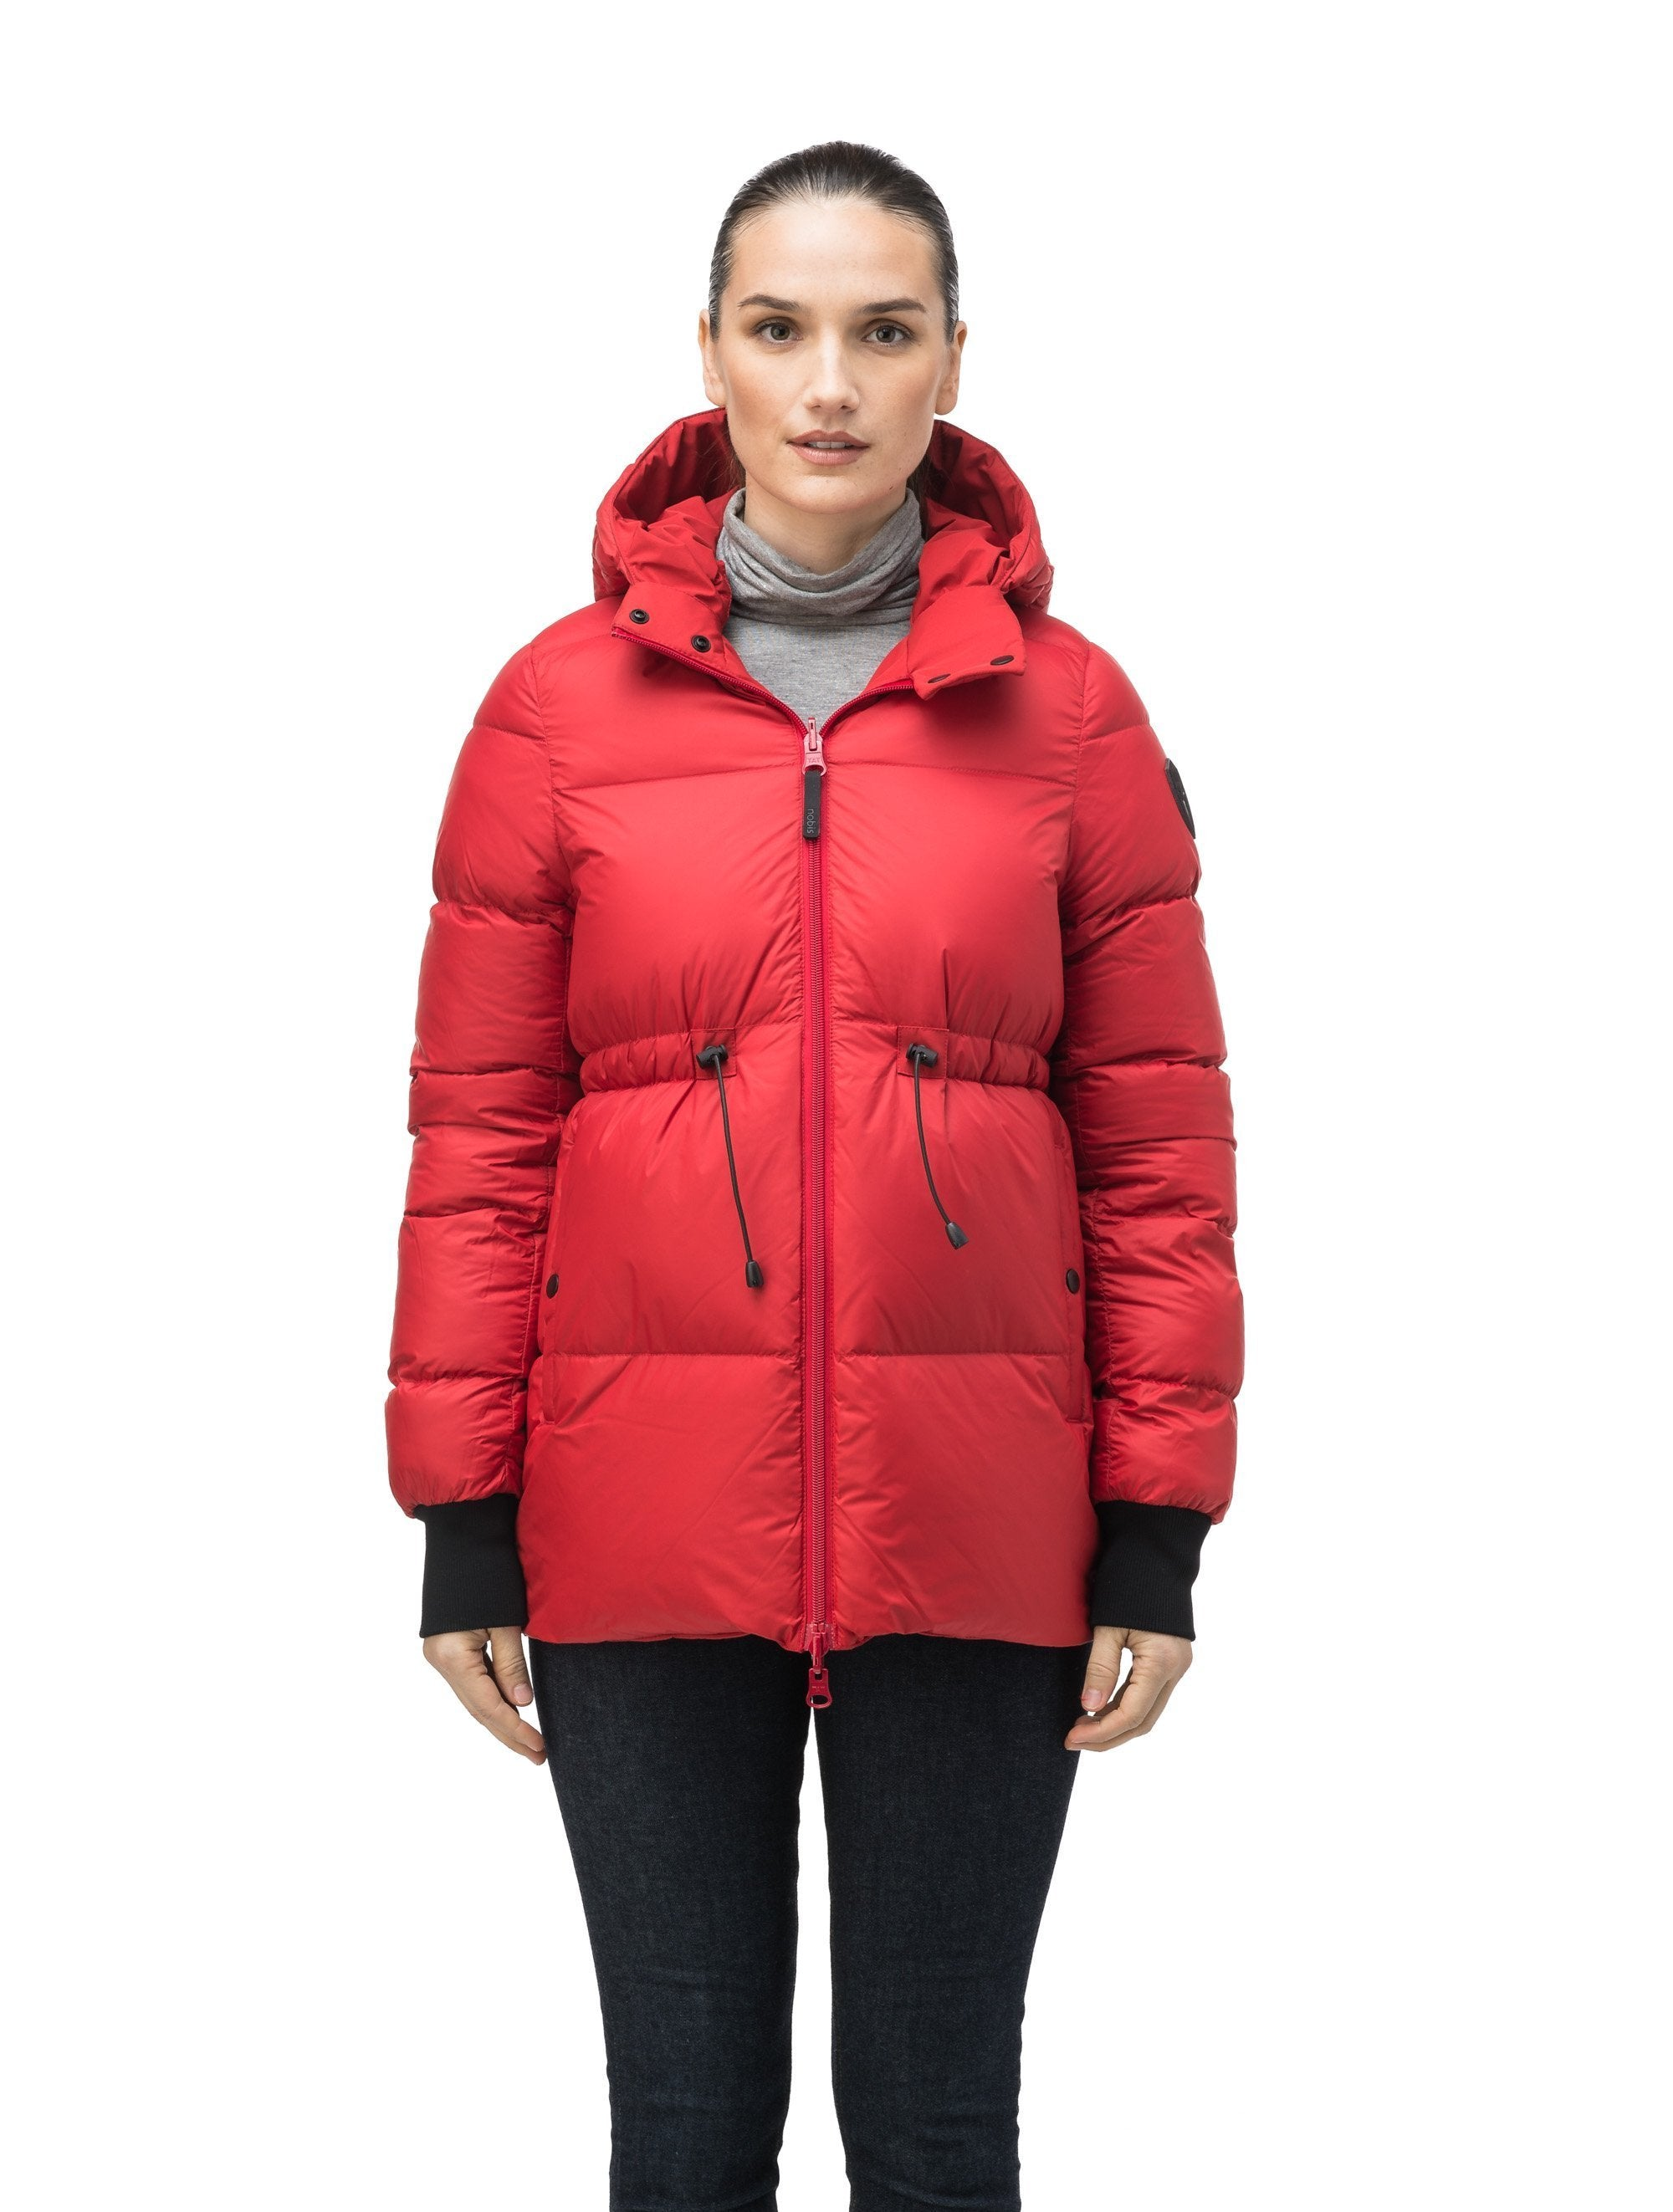 Hip length, reversible women's down filled jacket with waterproof exposed zipper in Vermillion